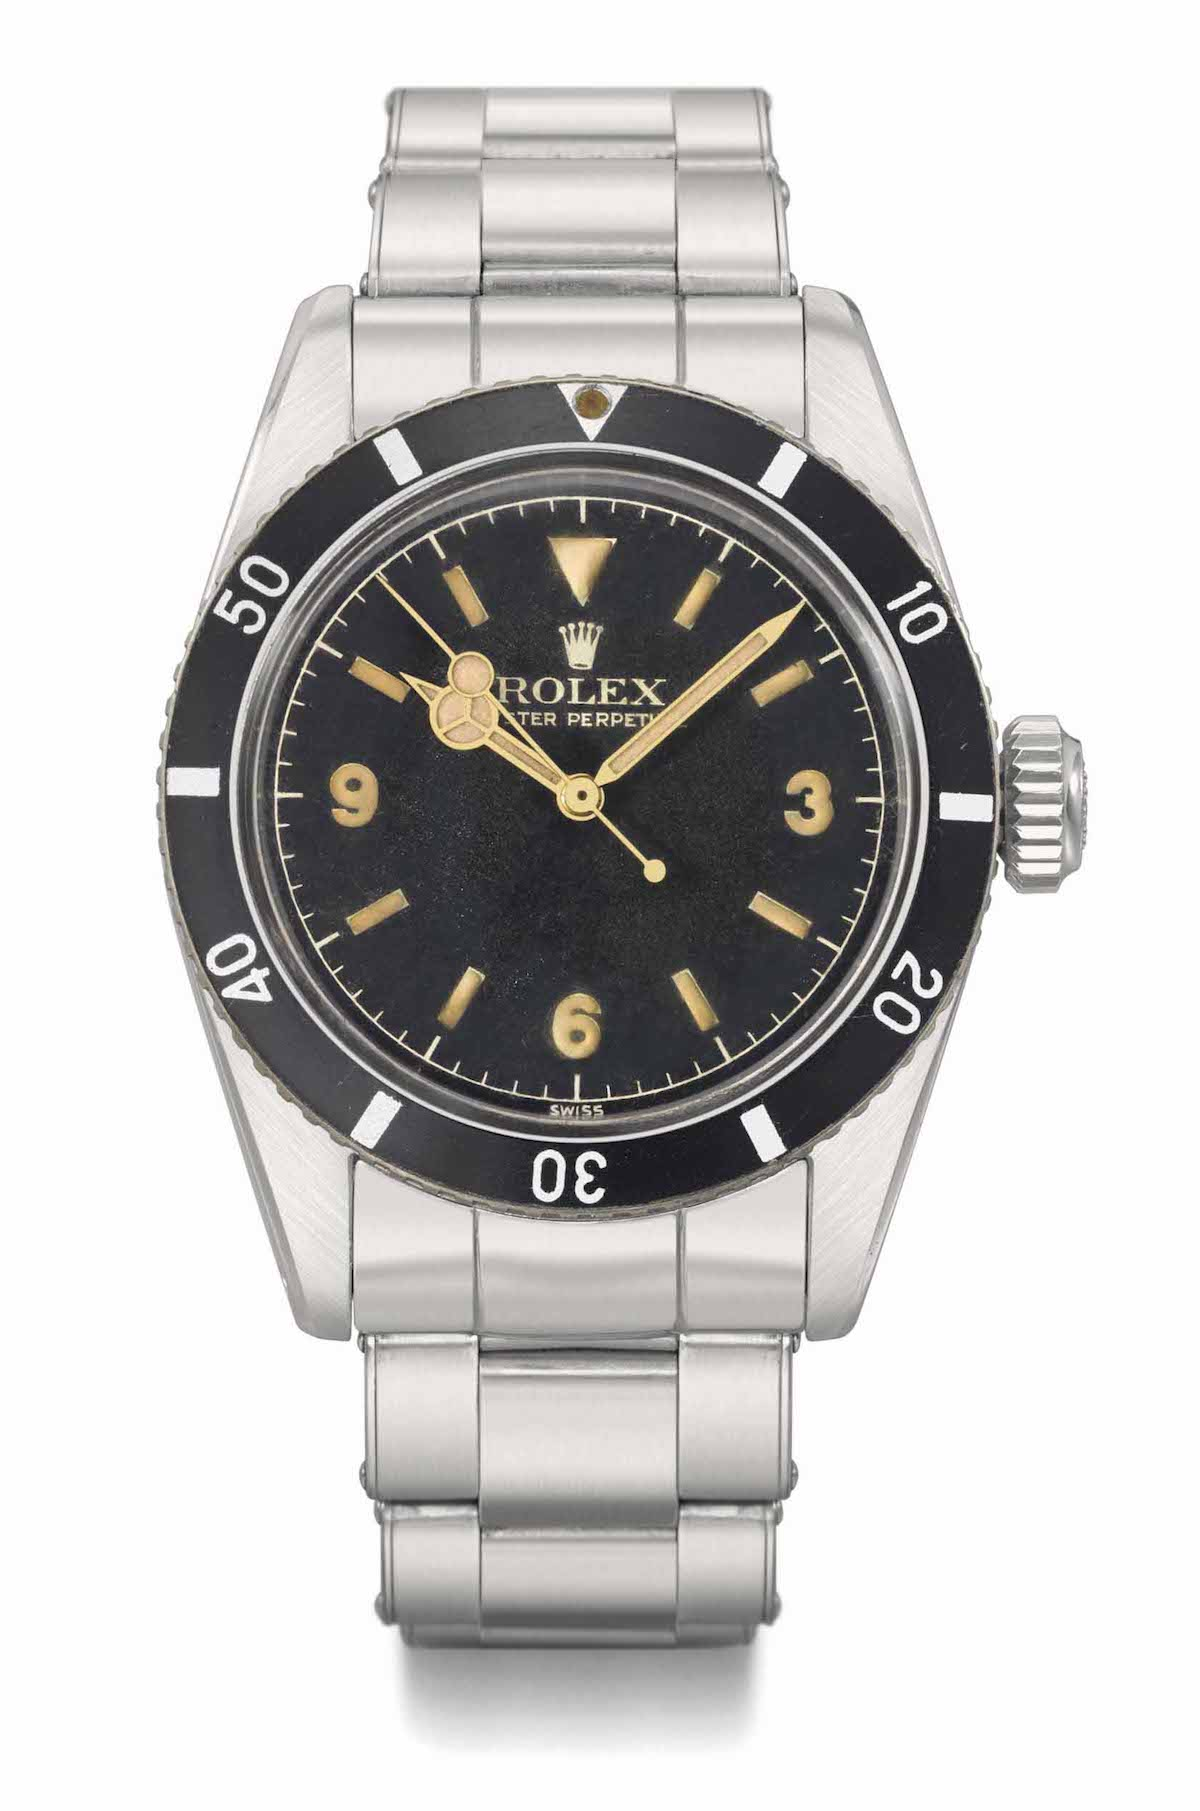 Rolex Submariner 6200 Explorer Dial - 1